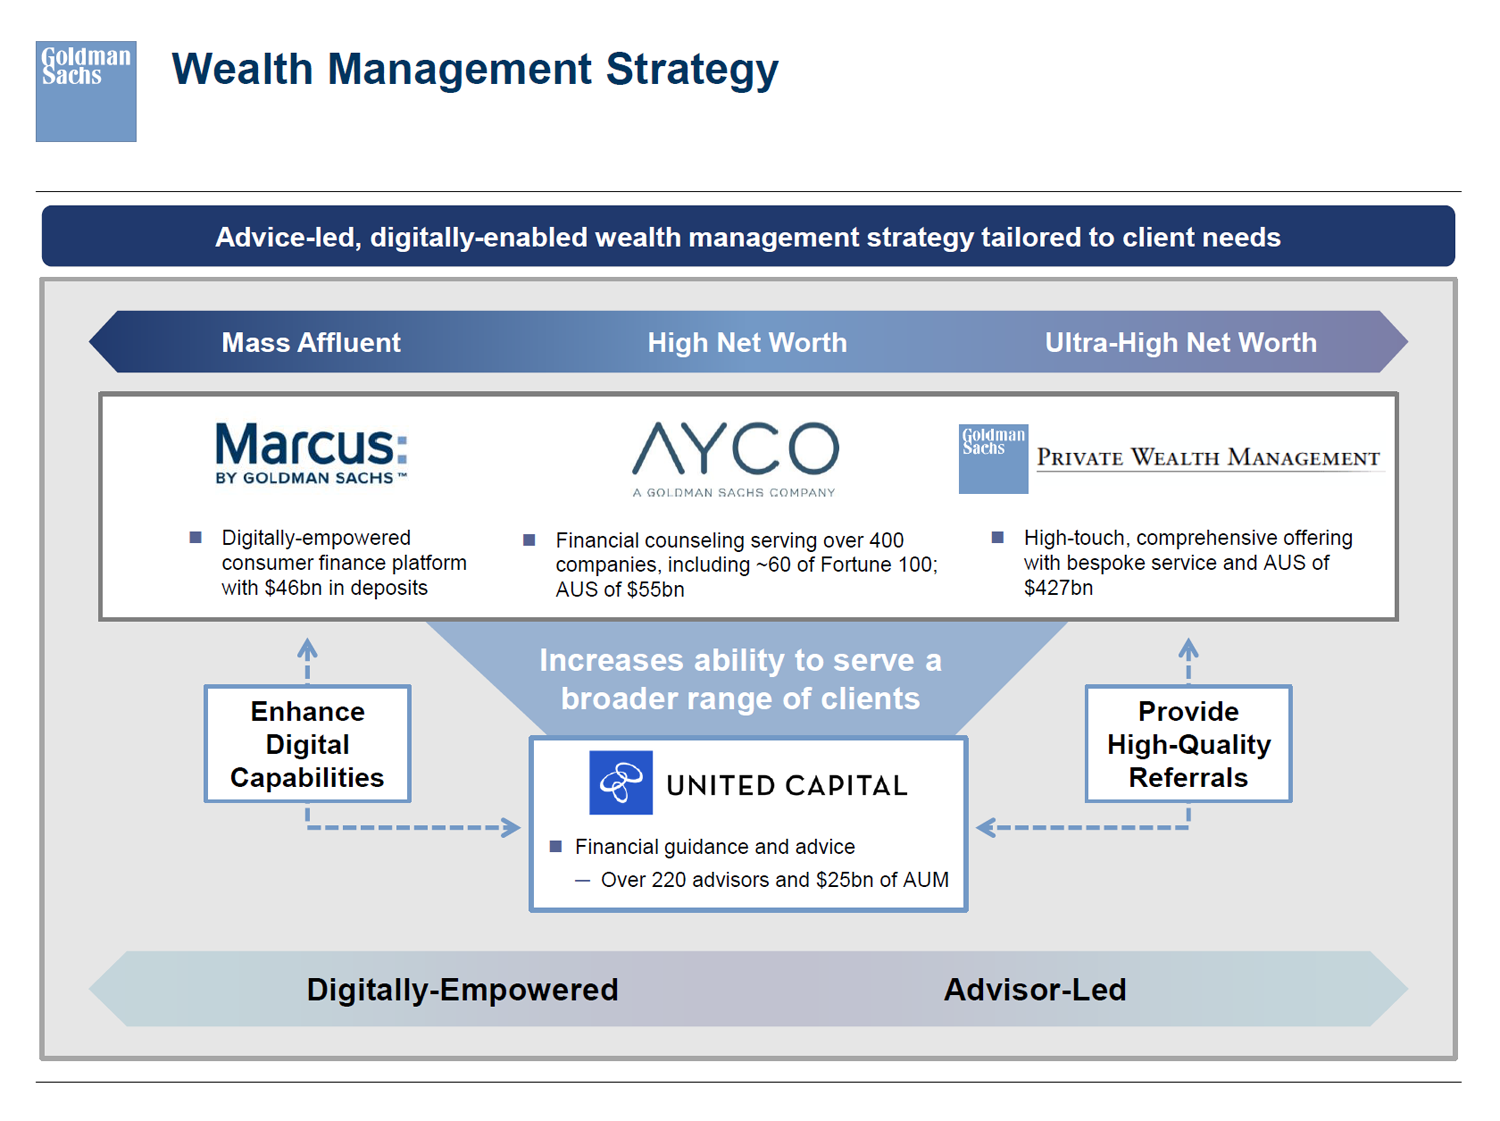 Goldman Sachs wealth management strategy